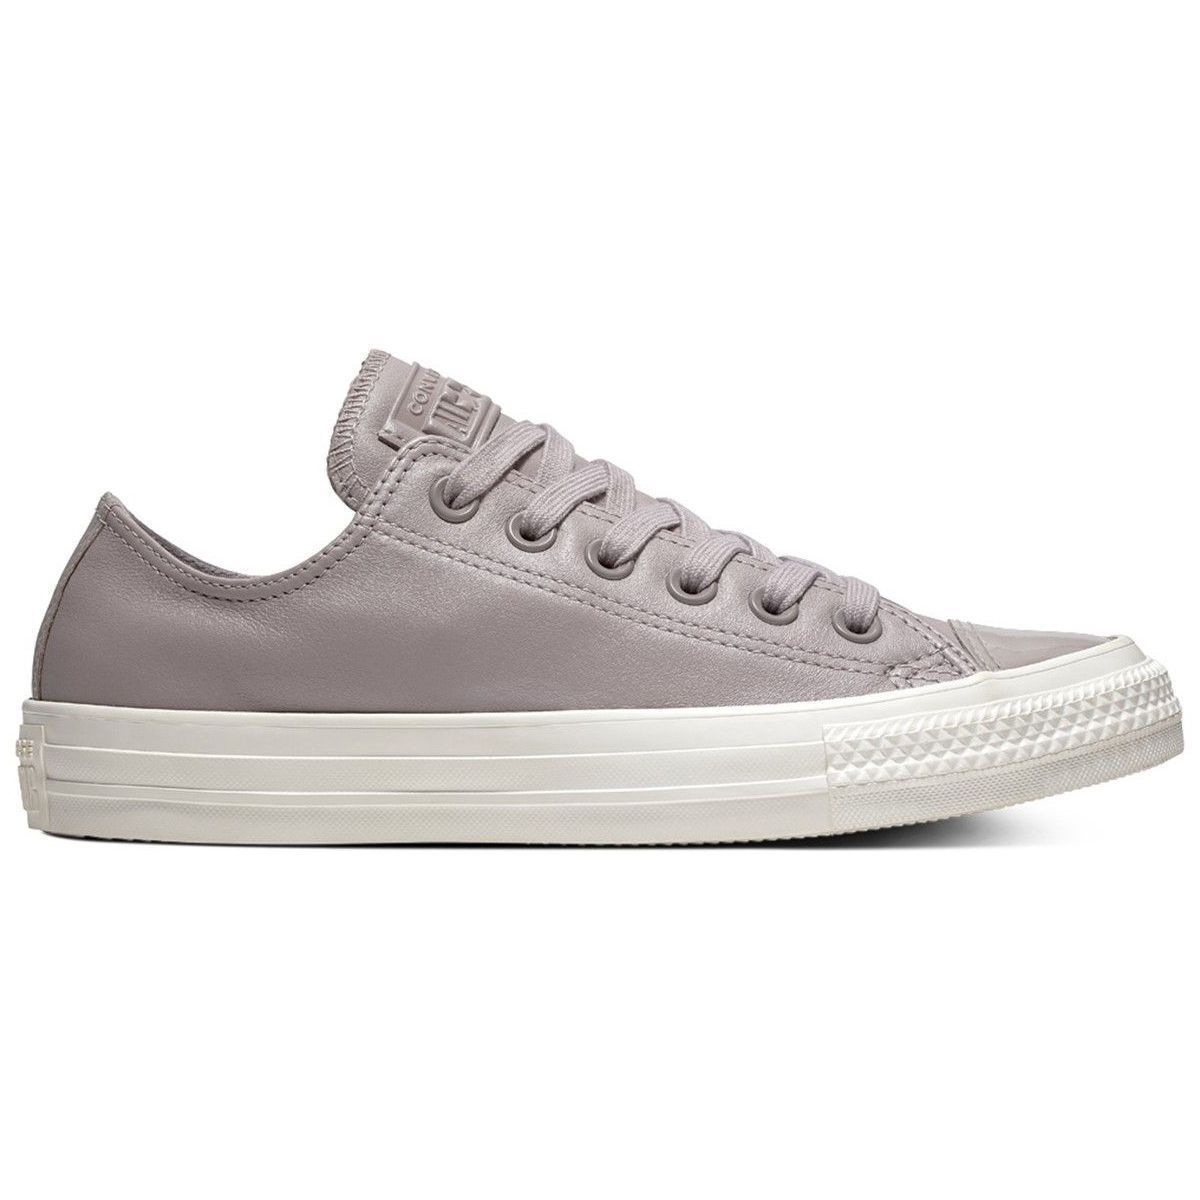 STOCK CITY W CHUCK TAYLOR ALL STAR LEATHER - OX:GRIS/CUIR/TEXTILE/CAOUTCHOUC/Gris